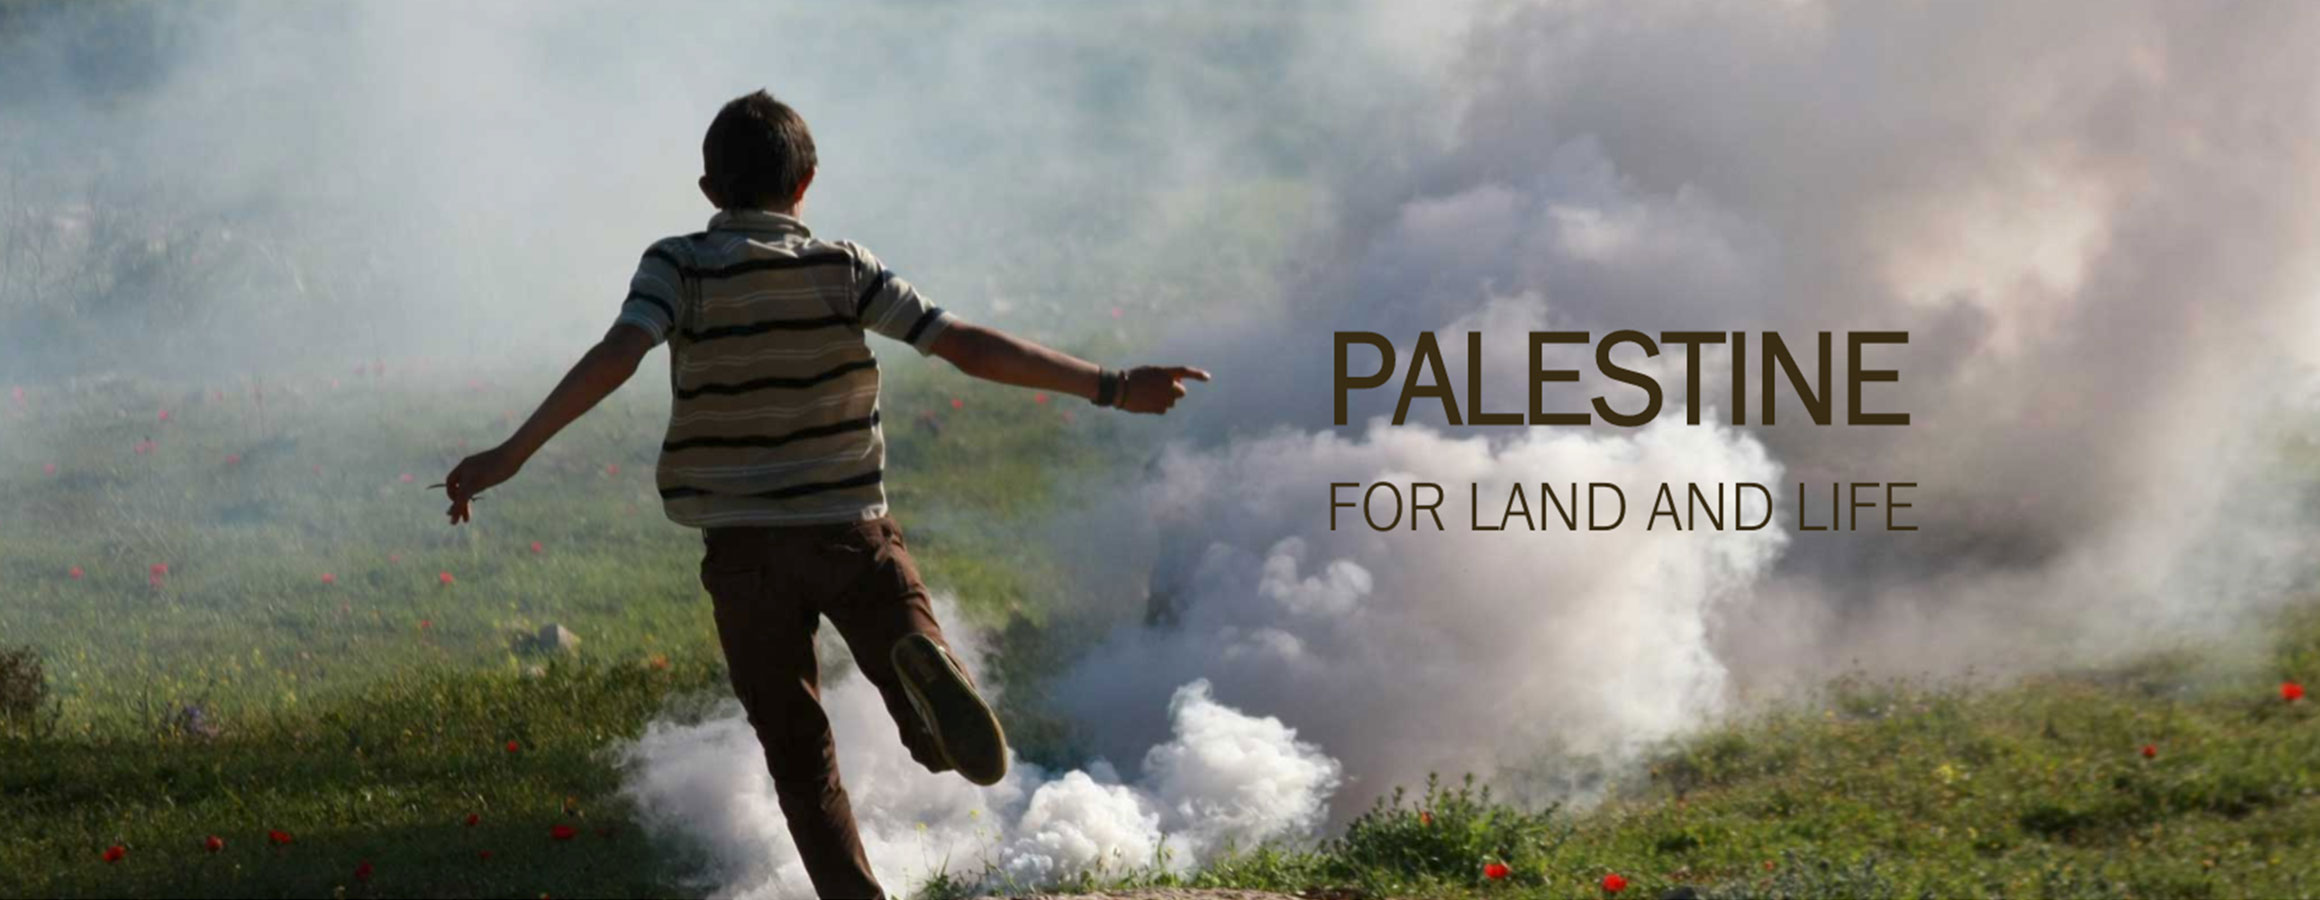 Palestine: For Land and Life